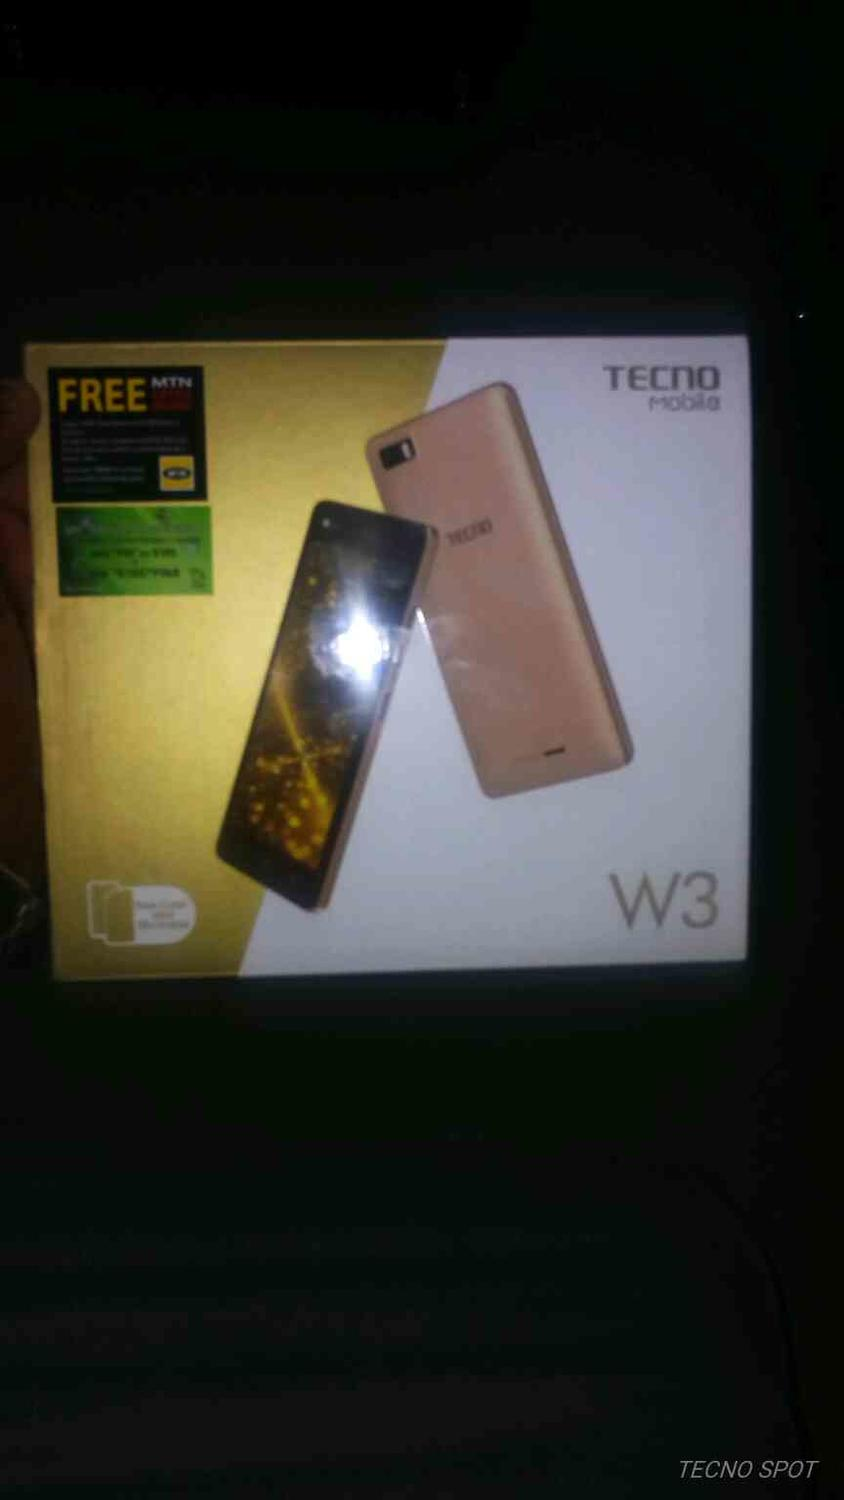 The problems of Tecno W3 - TECNO MOBILE COMMUNITY OFFICIAL FORUM